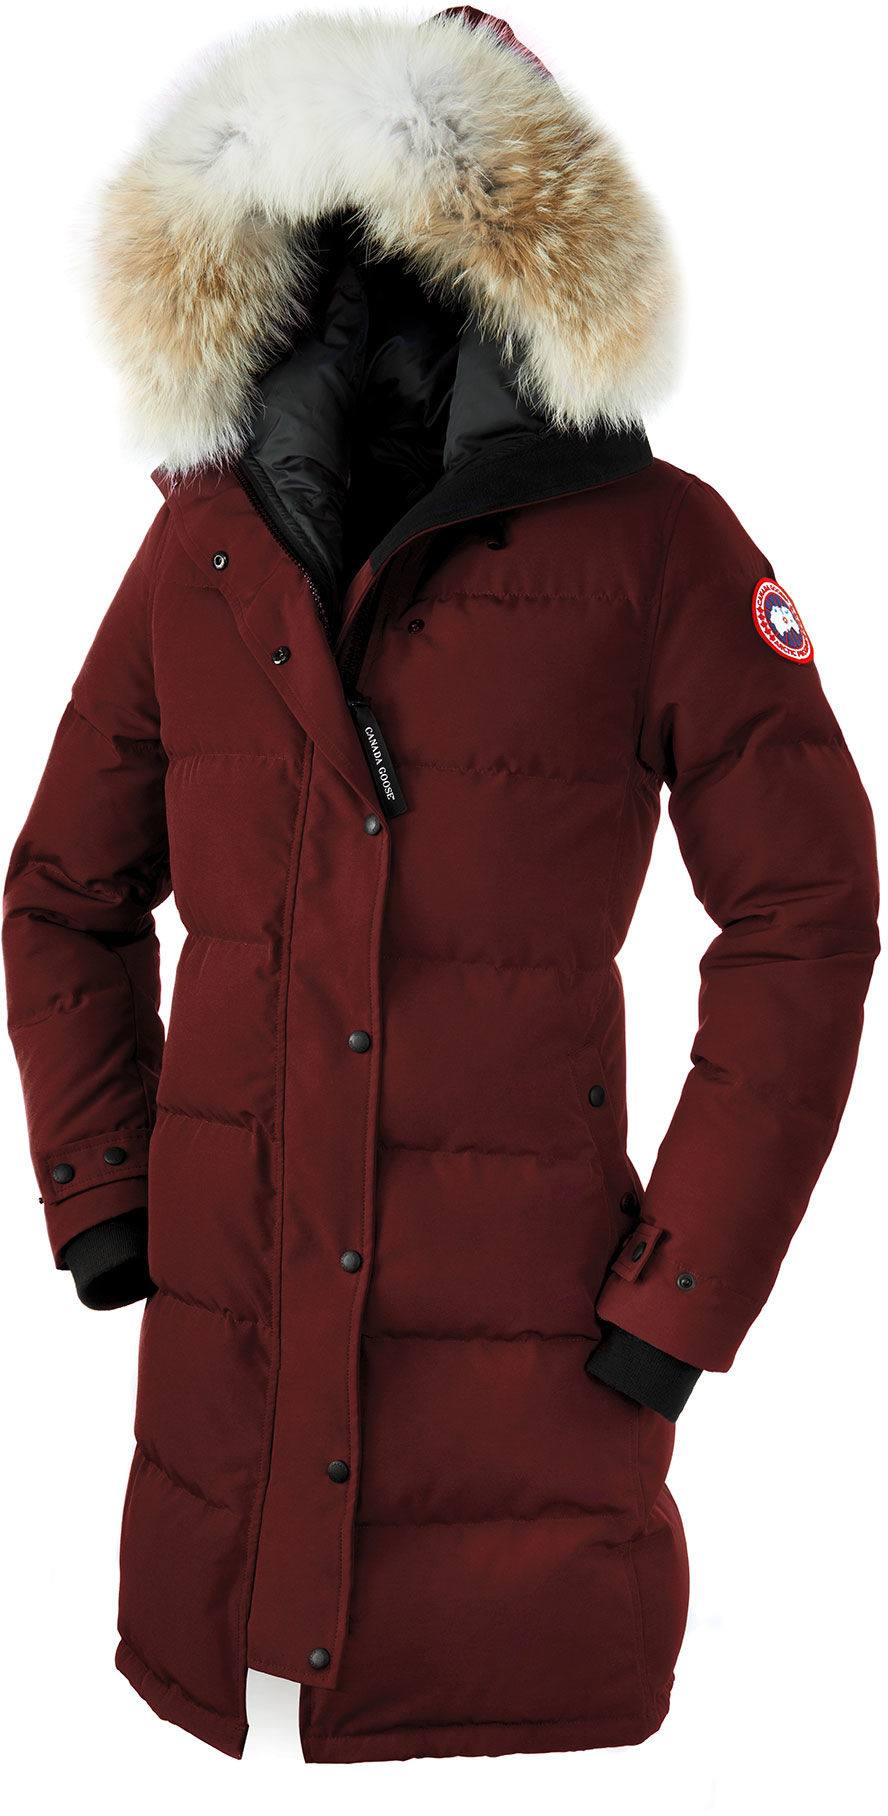 Shop for winter coats and jackets at Burlington.